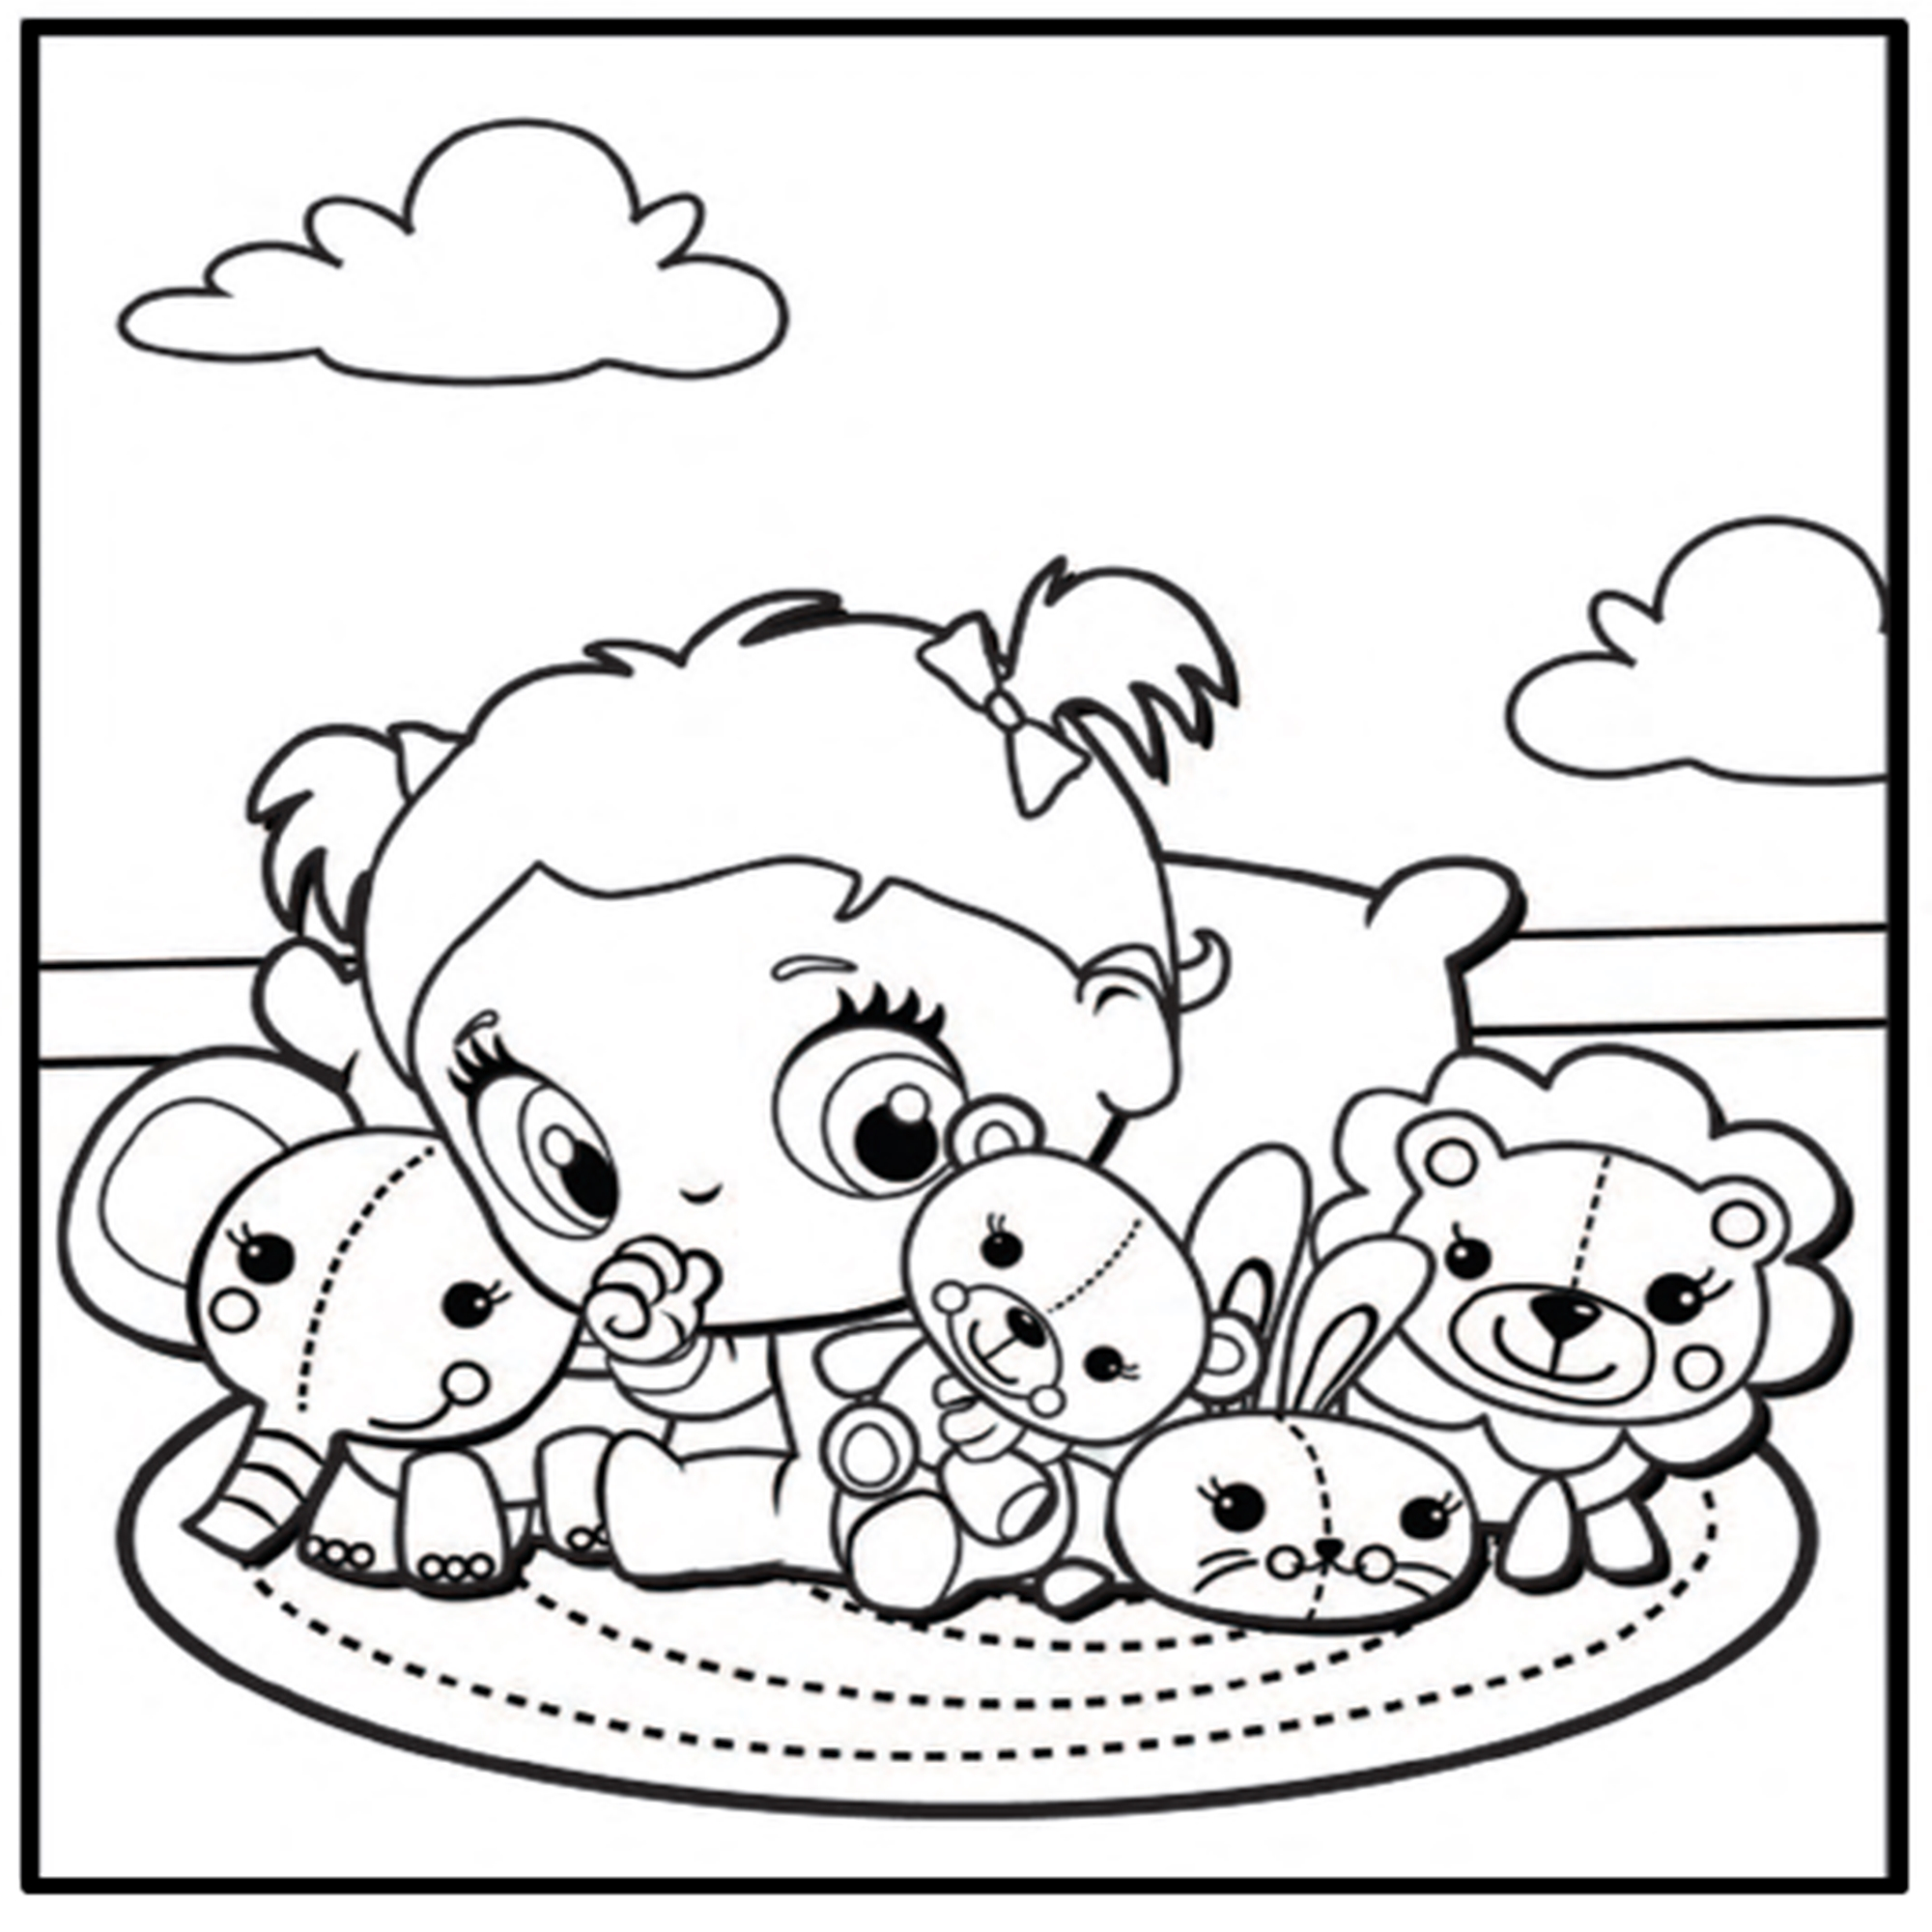 2000x2000 Baby Alive Coloring Pages